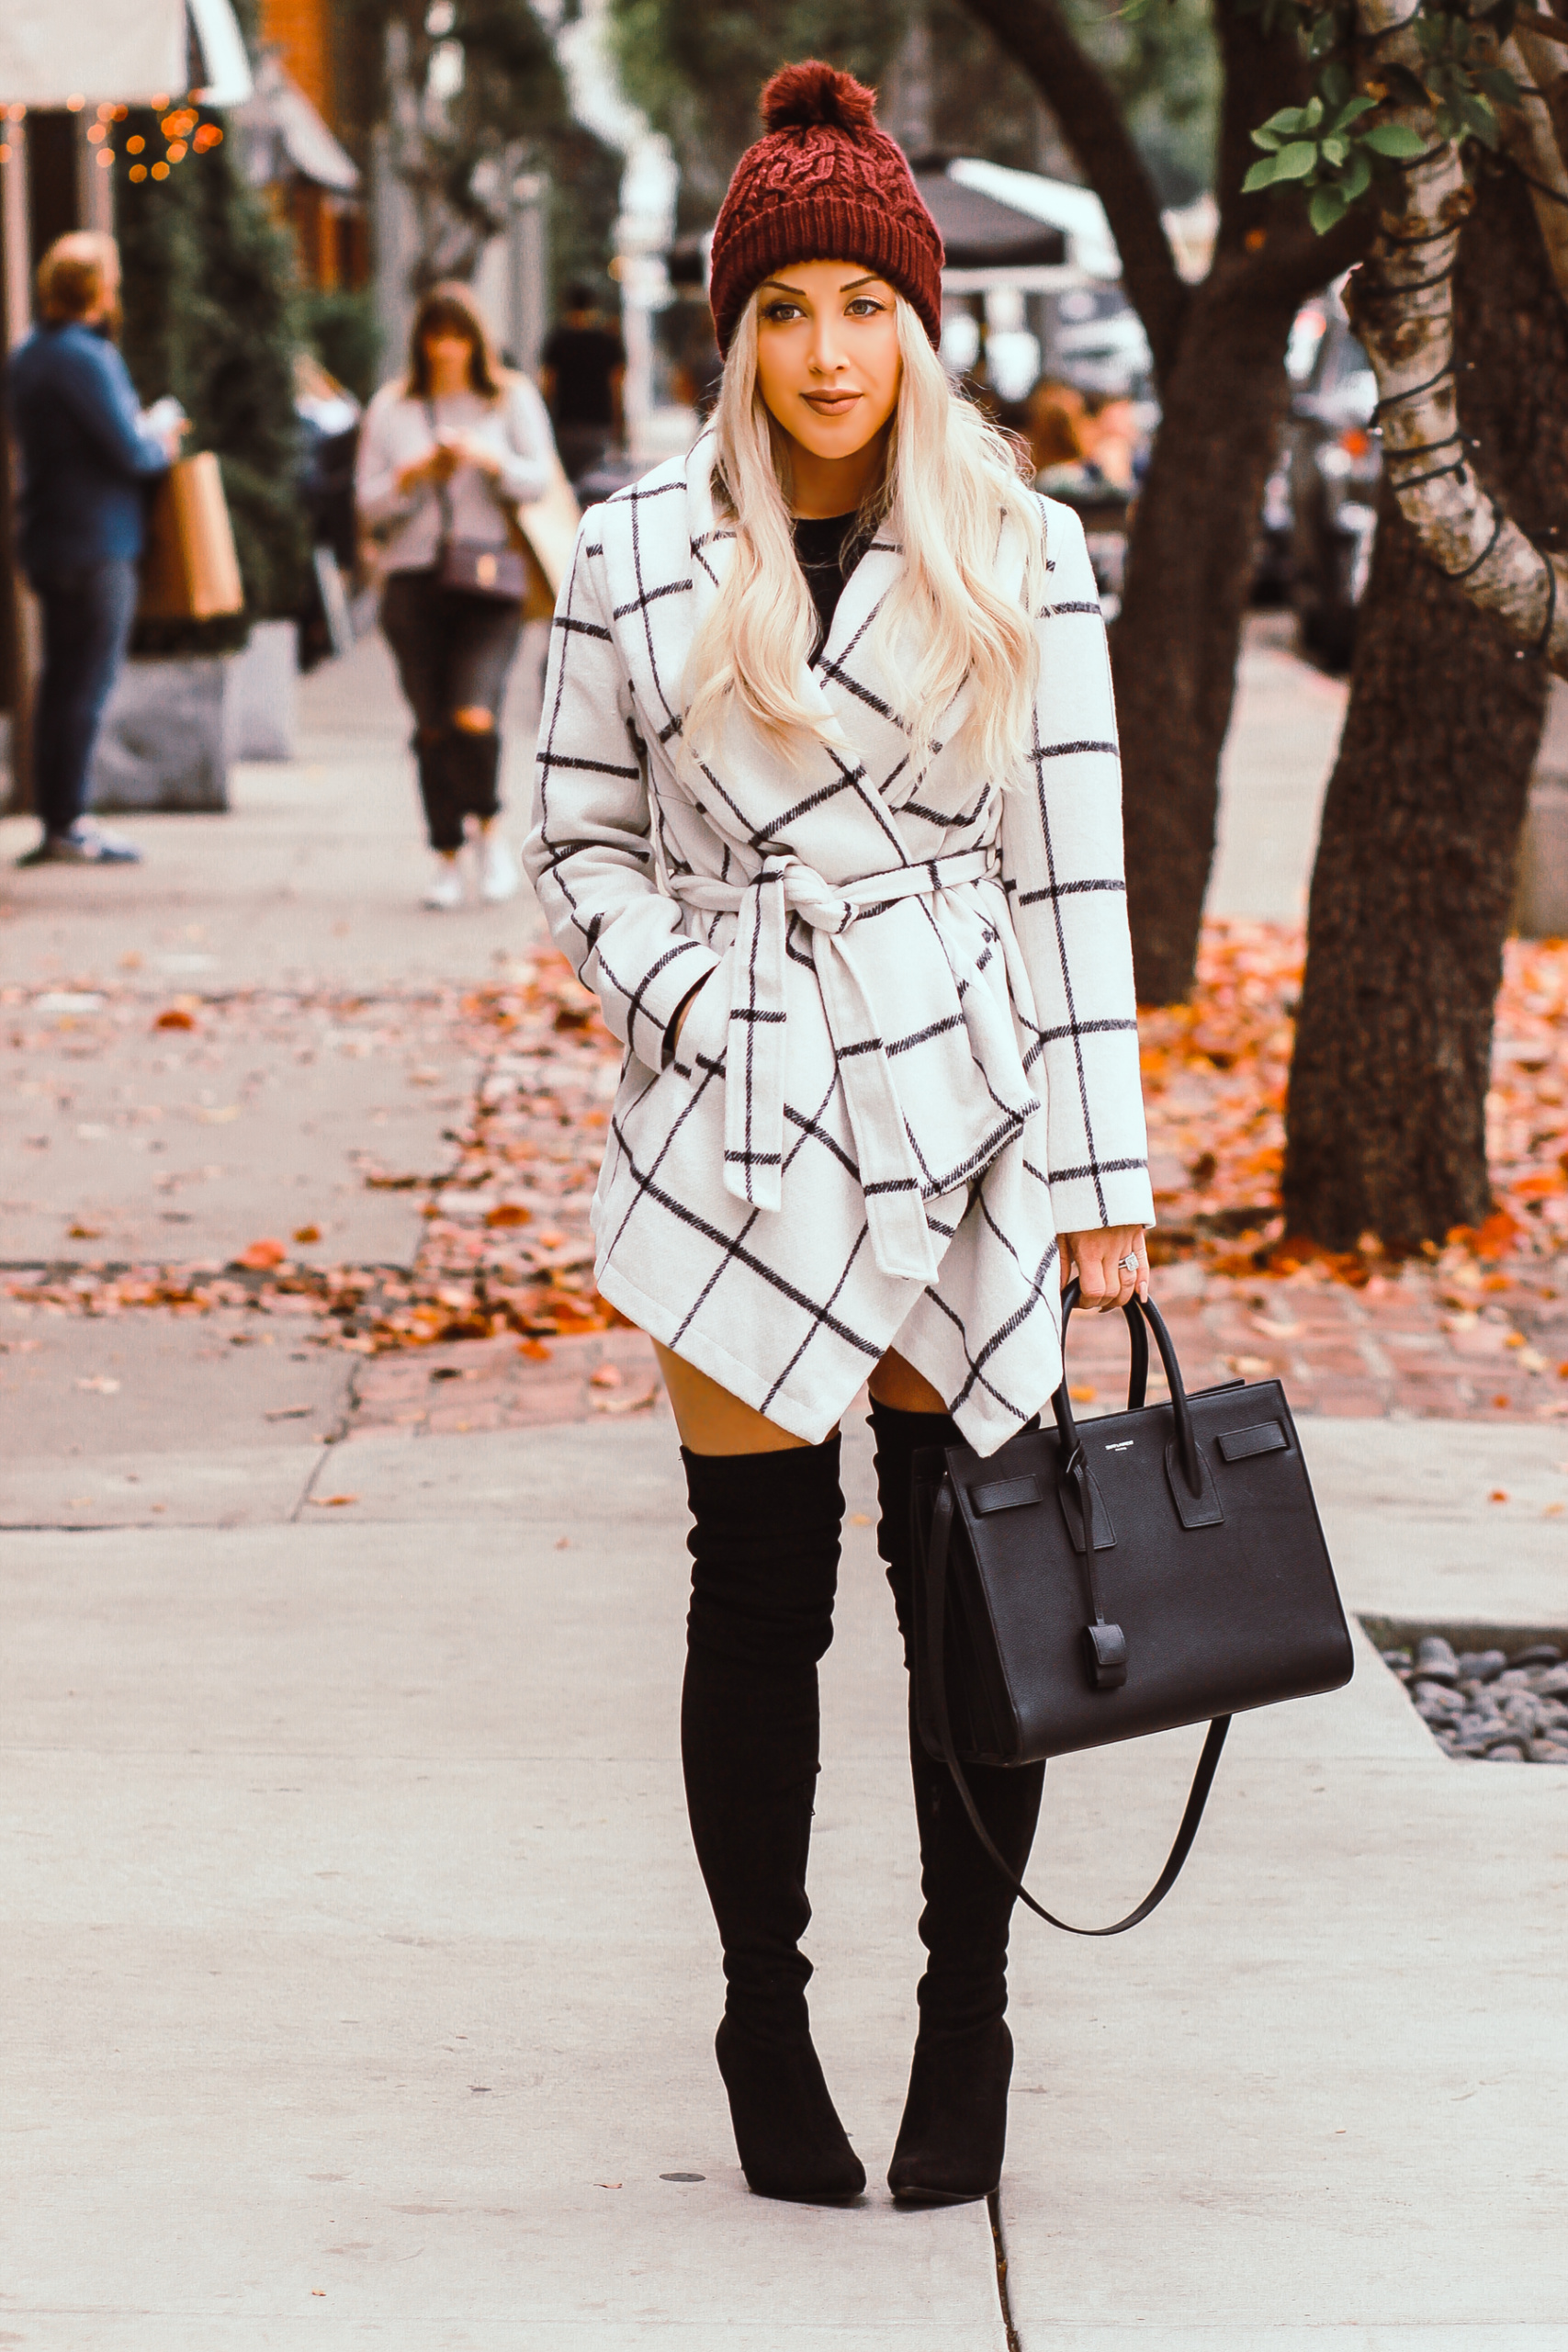 Winter Fashion, Black & White Grid Coat, Pom Beanie, Thigh High Boots, YSL Bag | Blondie in the City